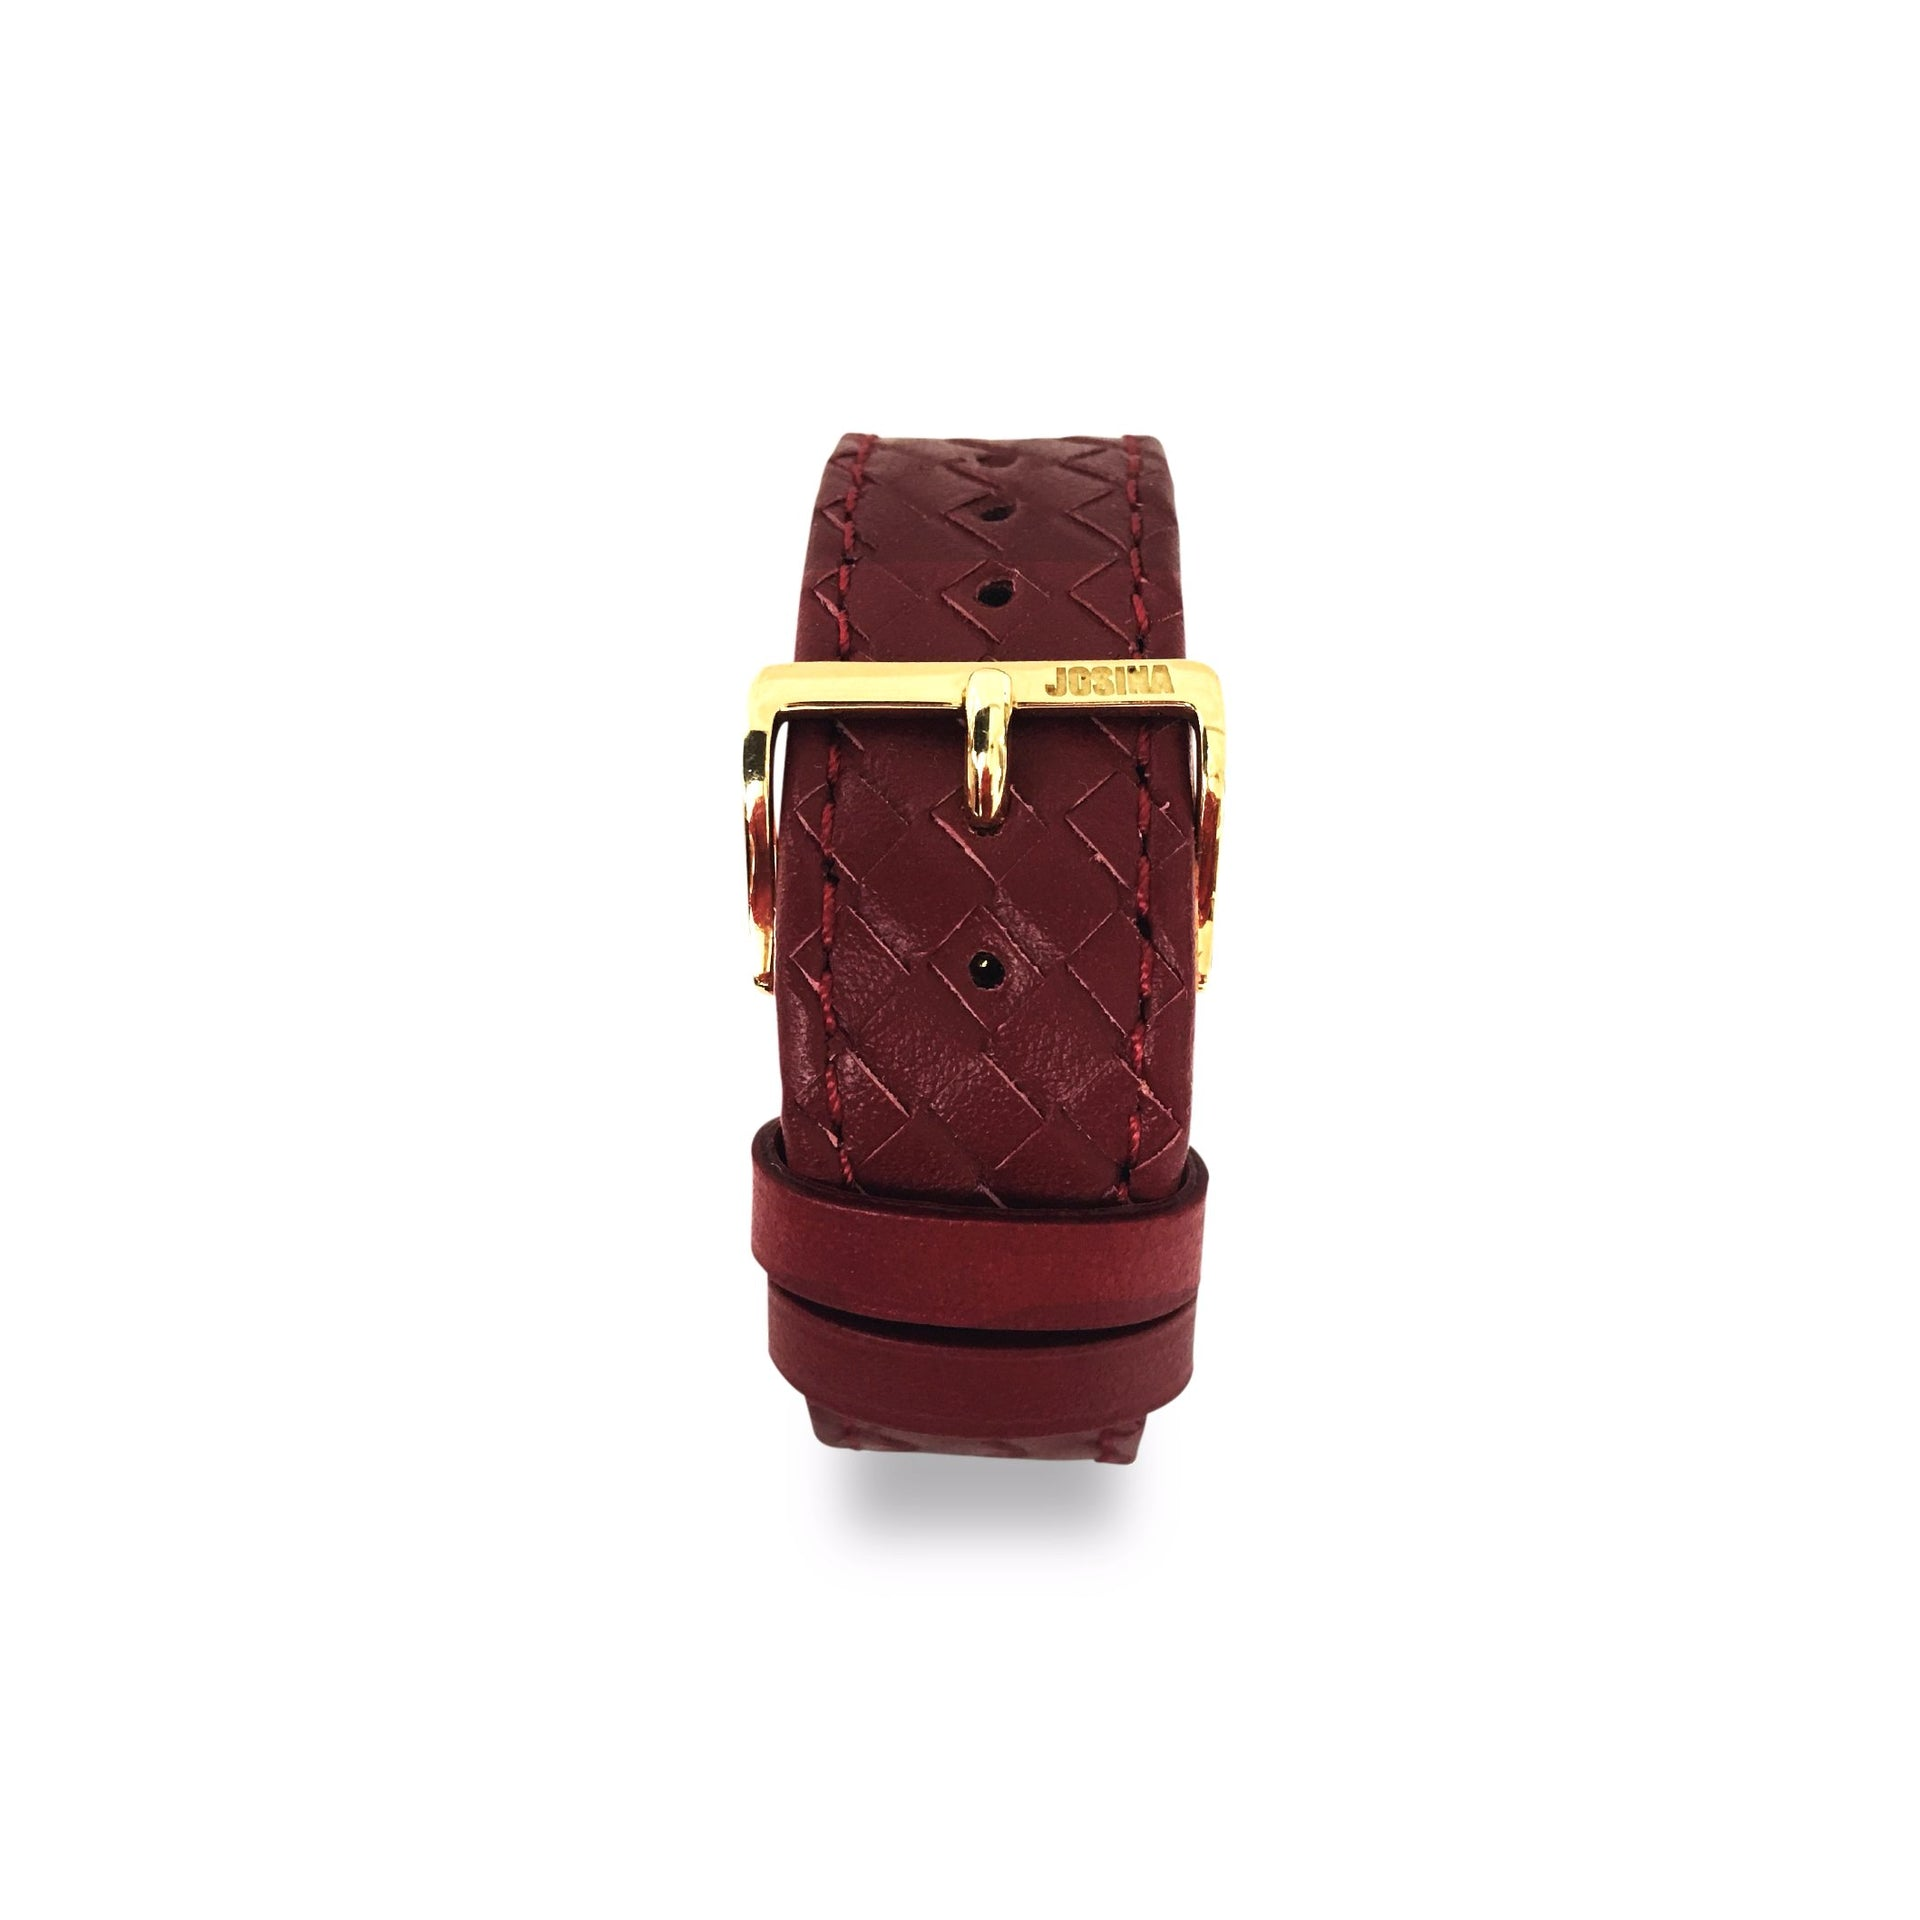 Embracelet woven Bordeaux with 18k gold buckle